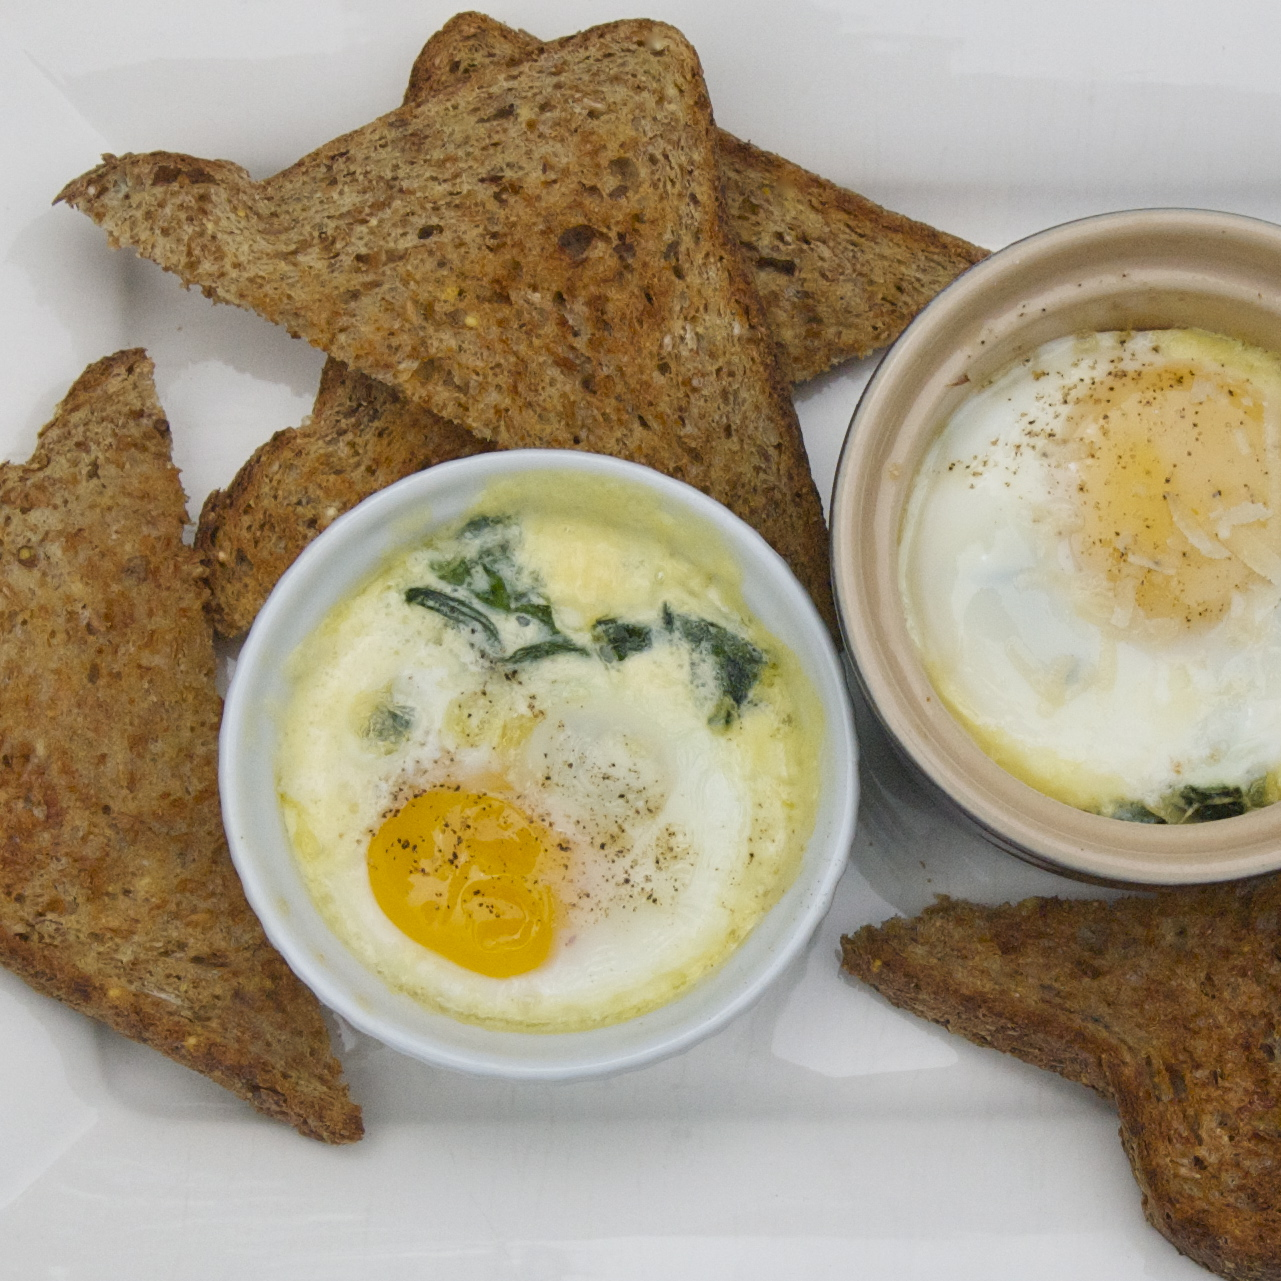 Ramekin-Baked Eggs with Spinach and Cream | scarpetta dolcetto